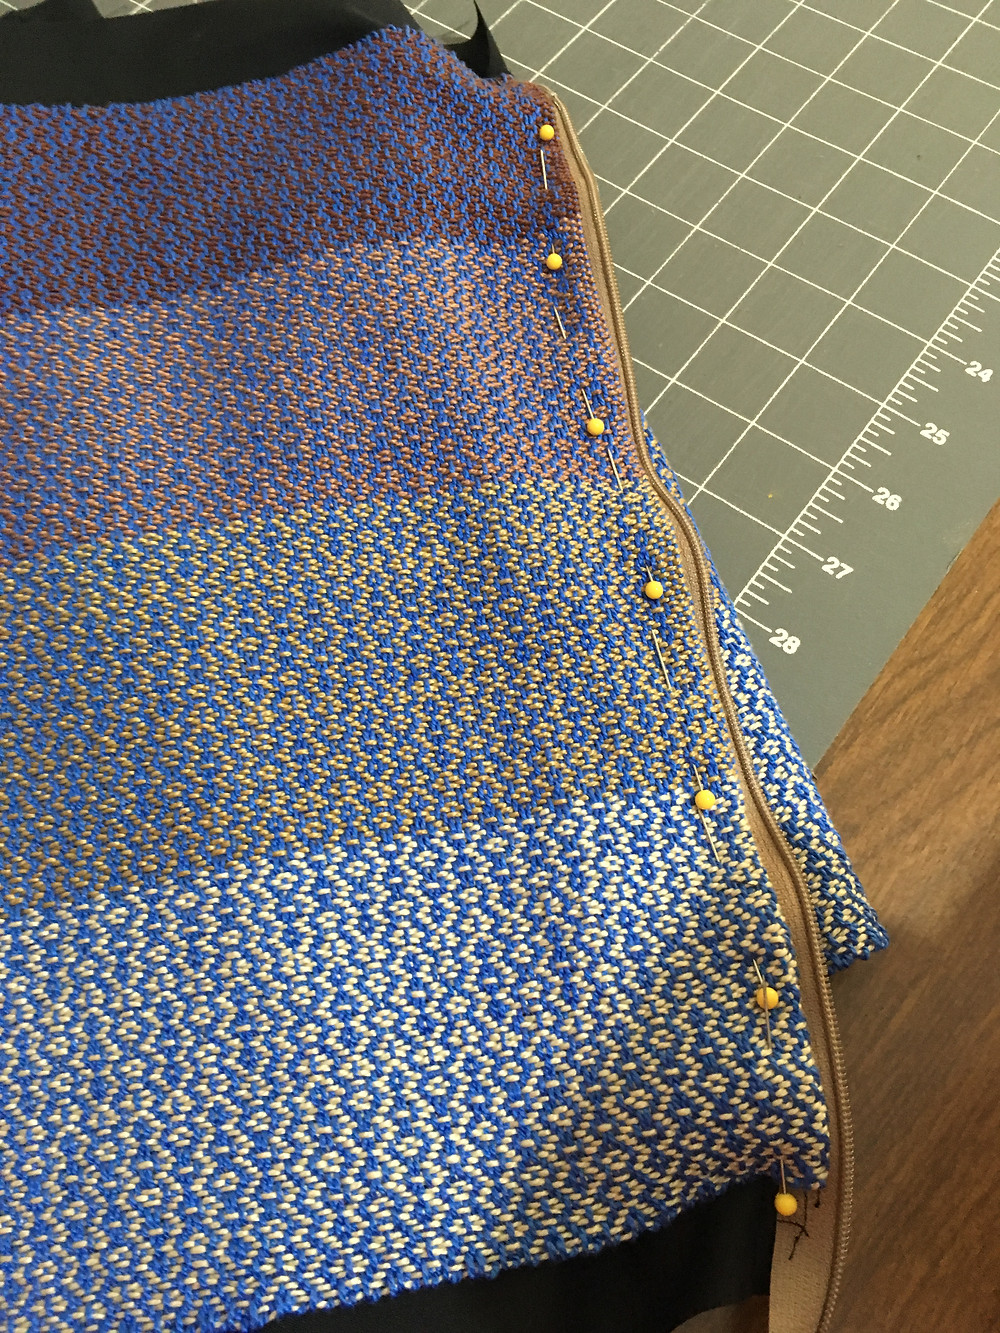 sewing the fabric and lining down to avoid sticking in zipper